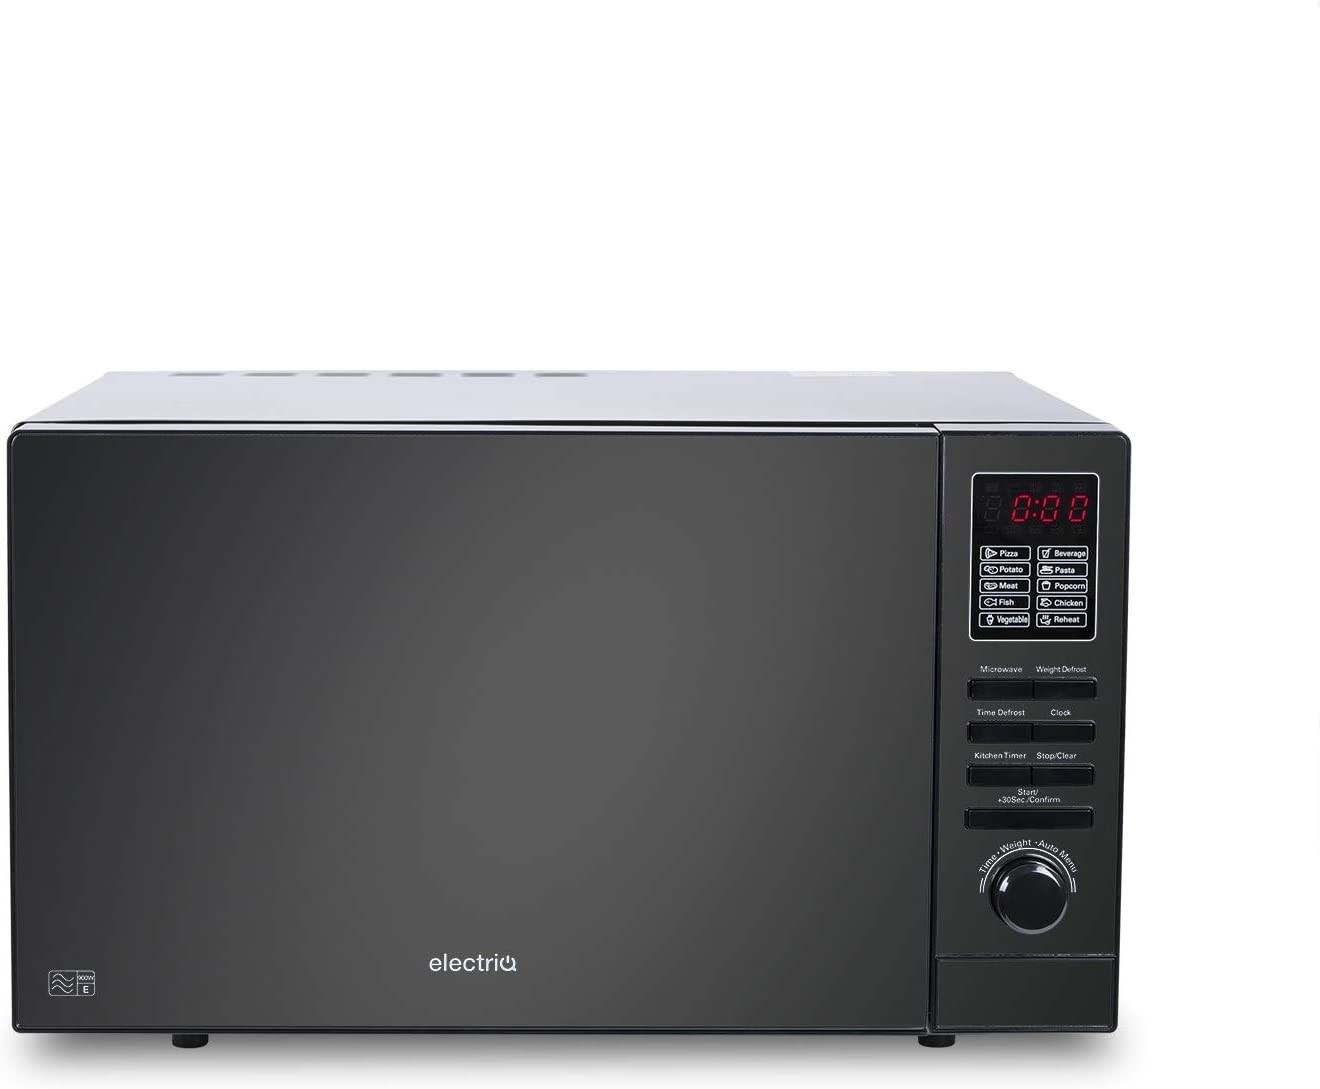 Image of ElectrIQ 25L Digital 900W Freestanding Microwave - Black